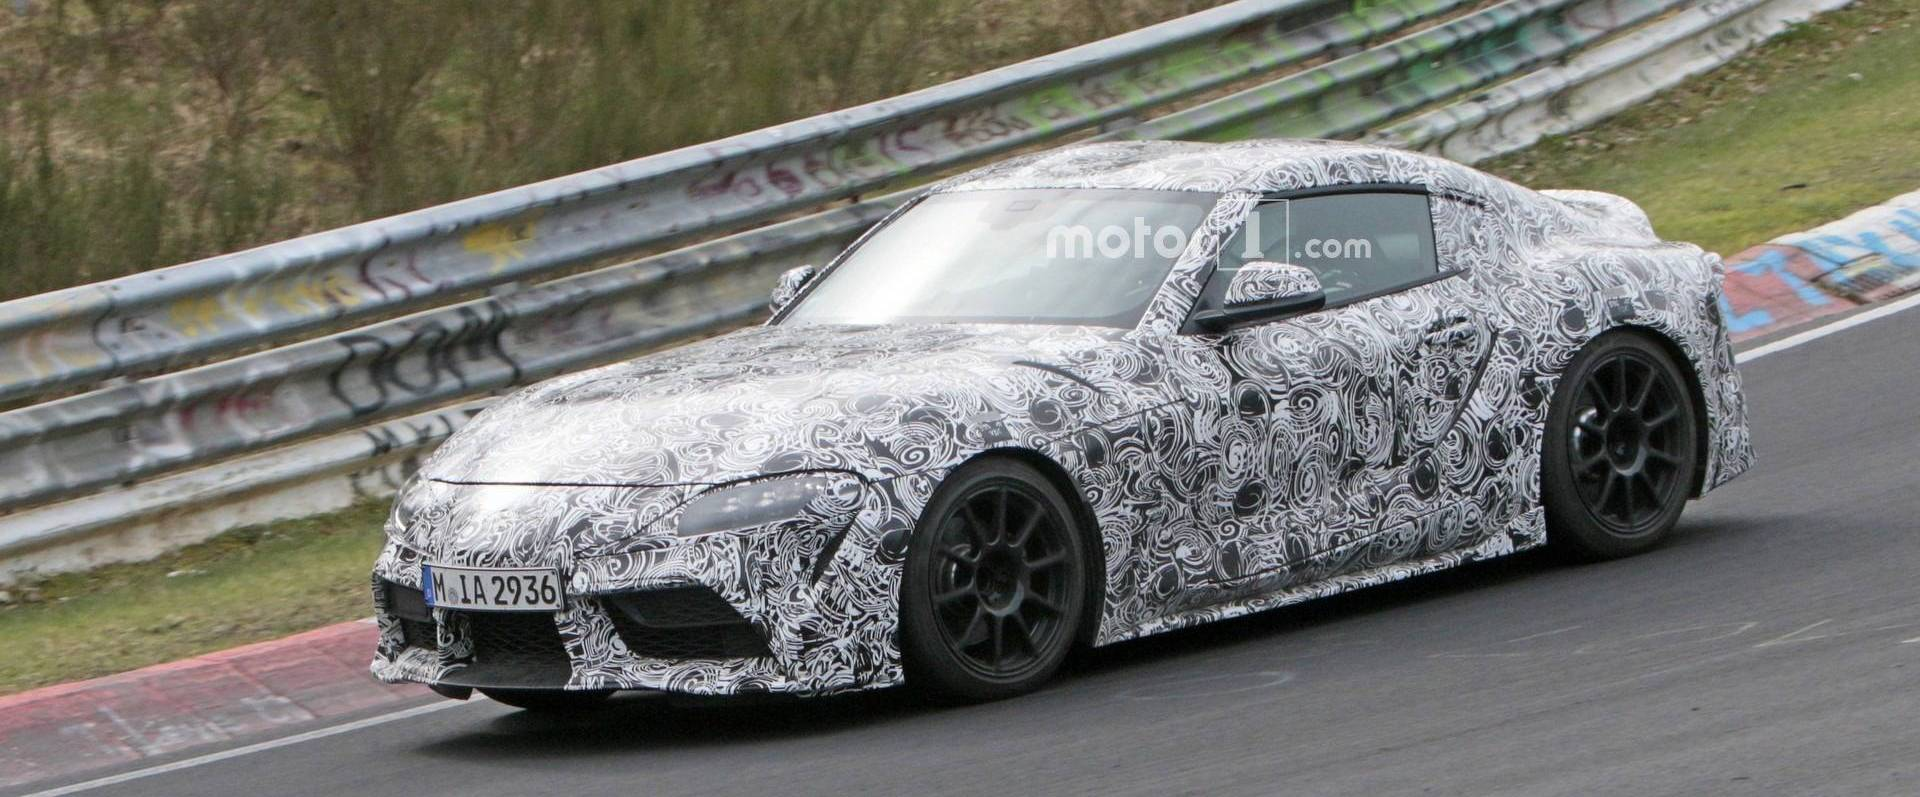 0540c9bae7 Toyota: New Supra Was Mostly Developed In Japan; Won't Be Cheap